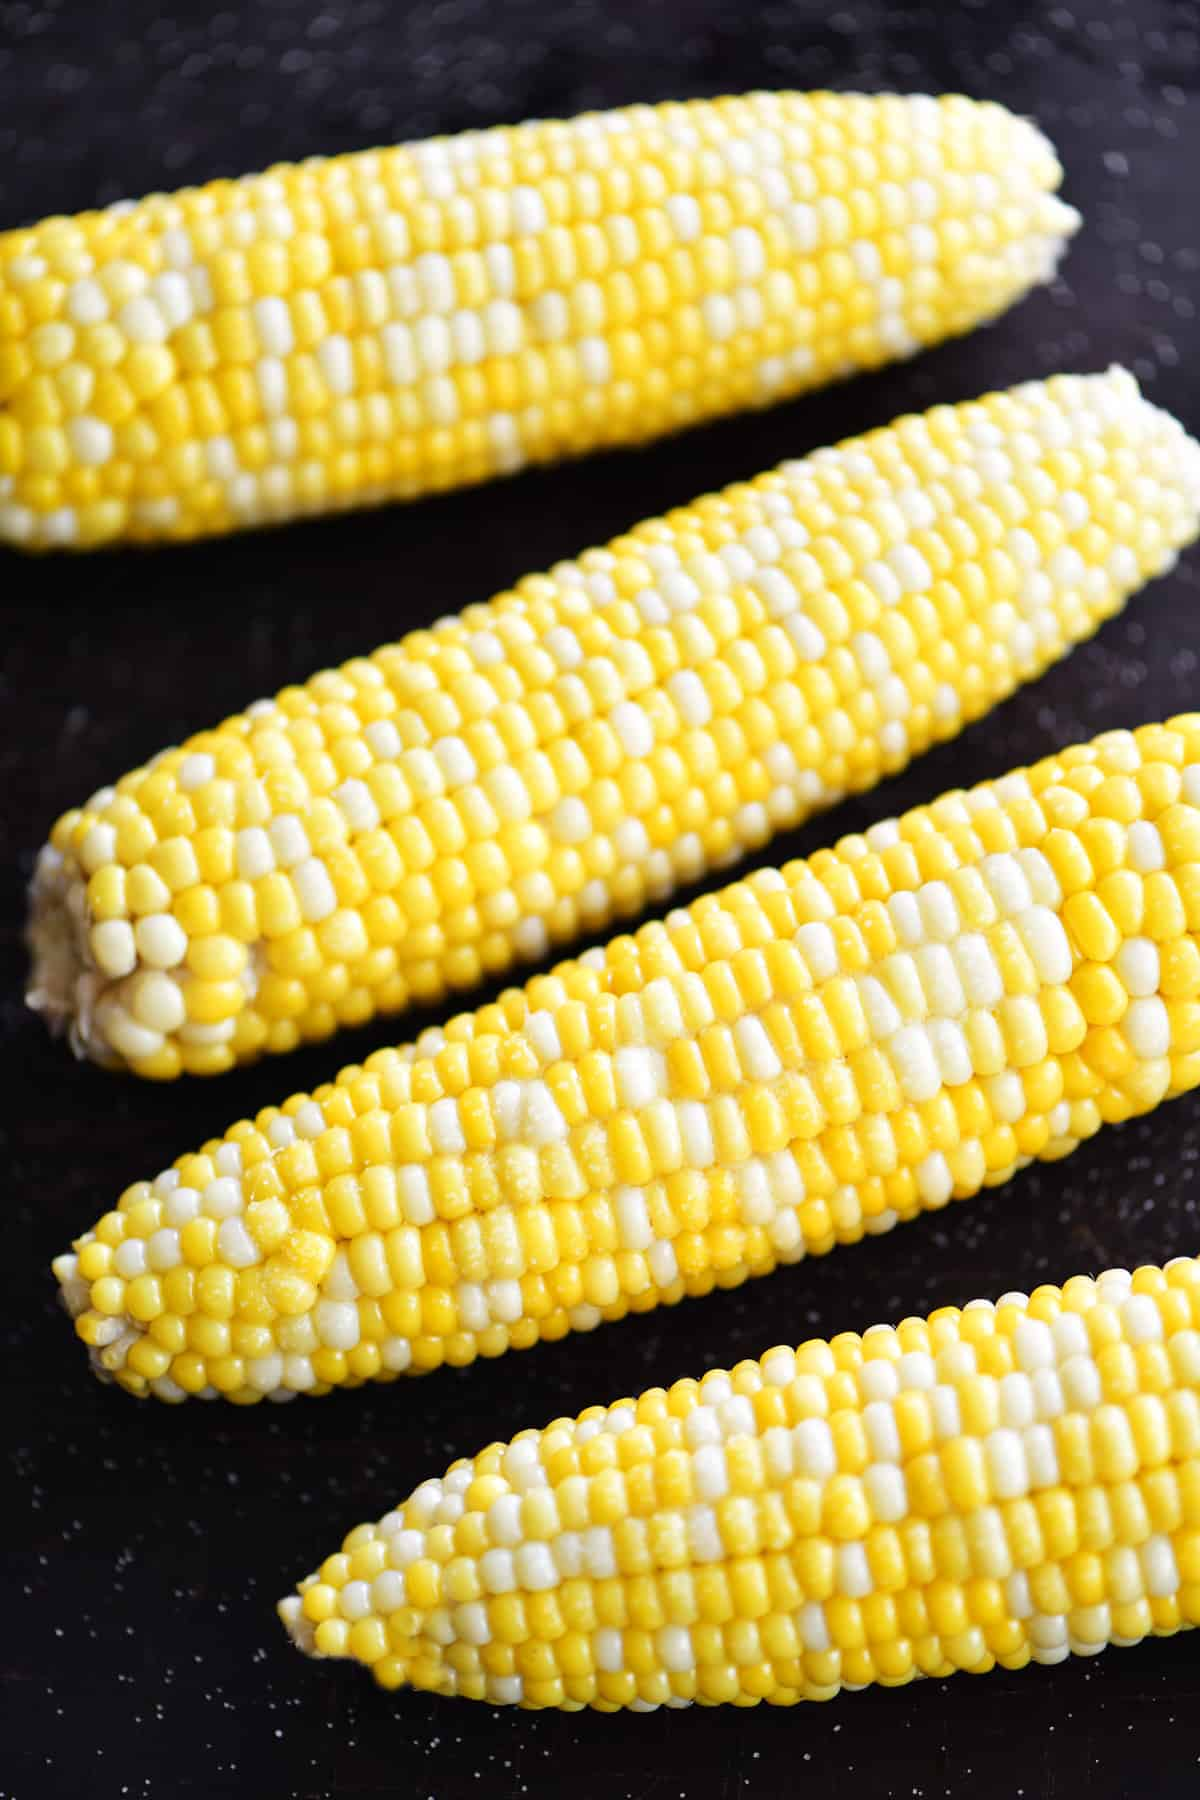 oven roasted corn on the cob with husks buttered